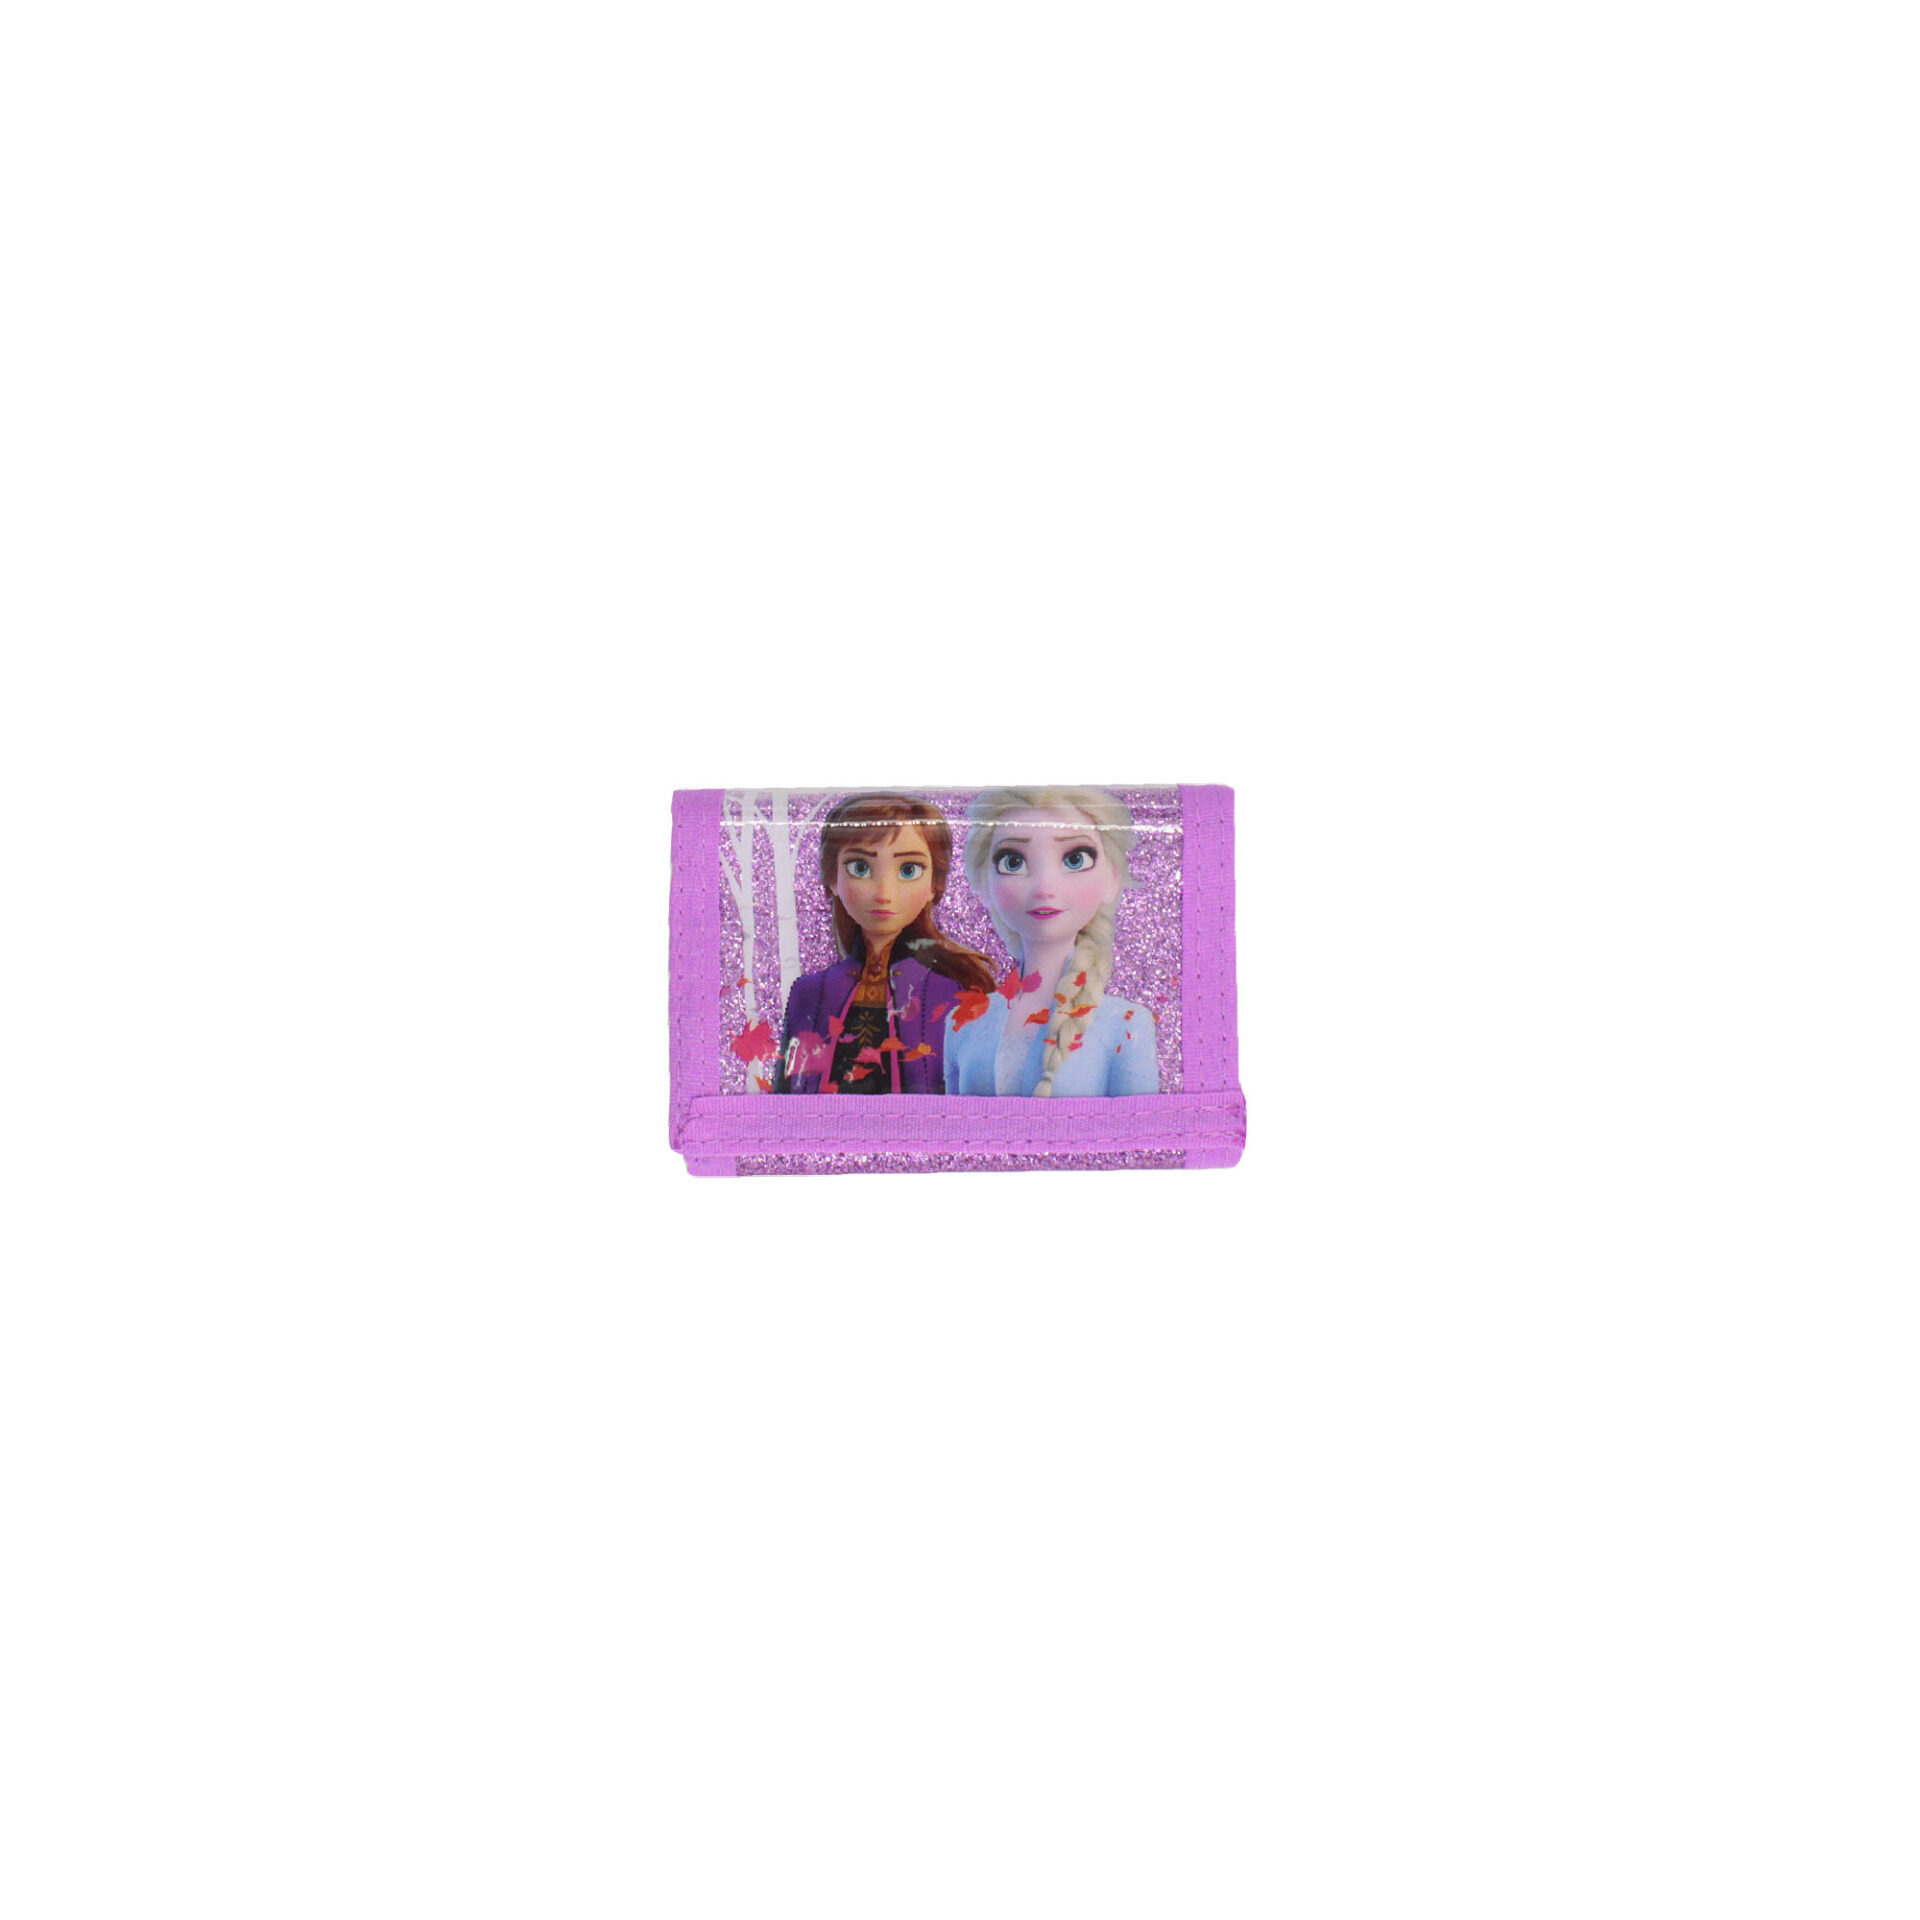 Disney Frozen 2 Princess Elsa & Anna Glitter Velcro Wallet For Girls (Purple)